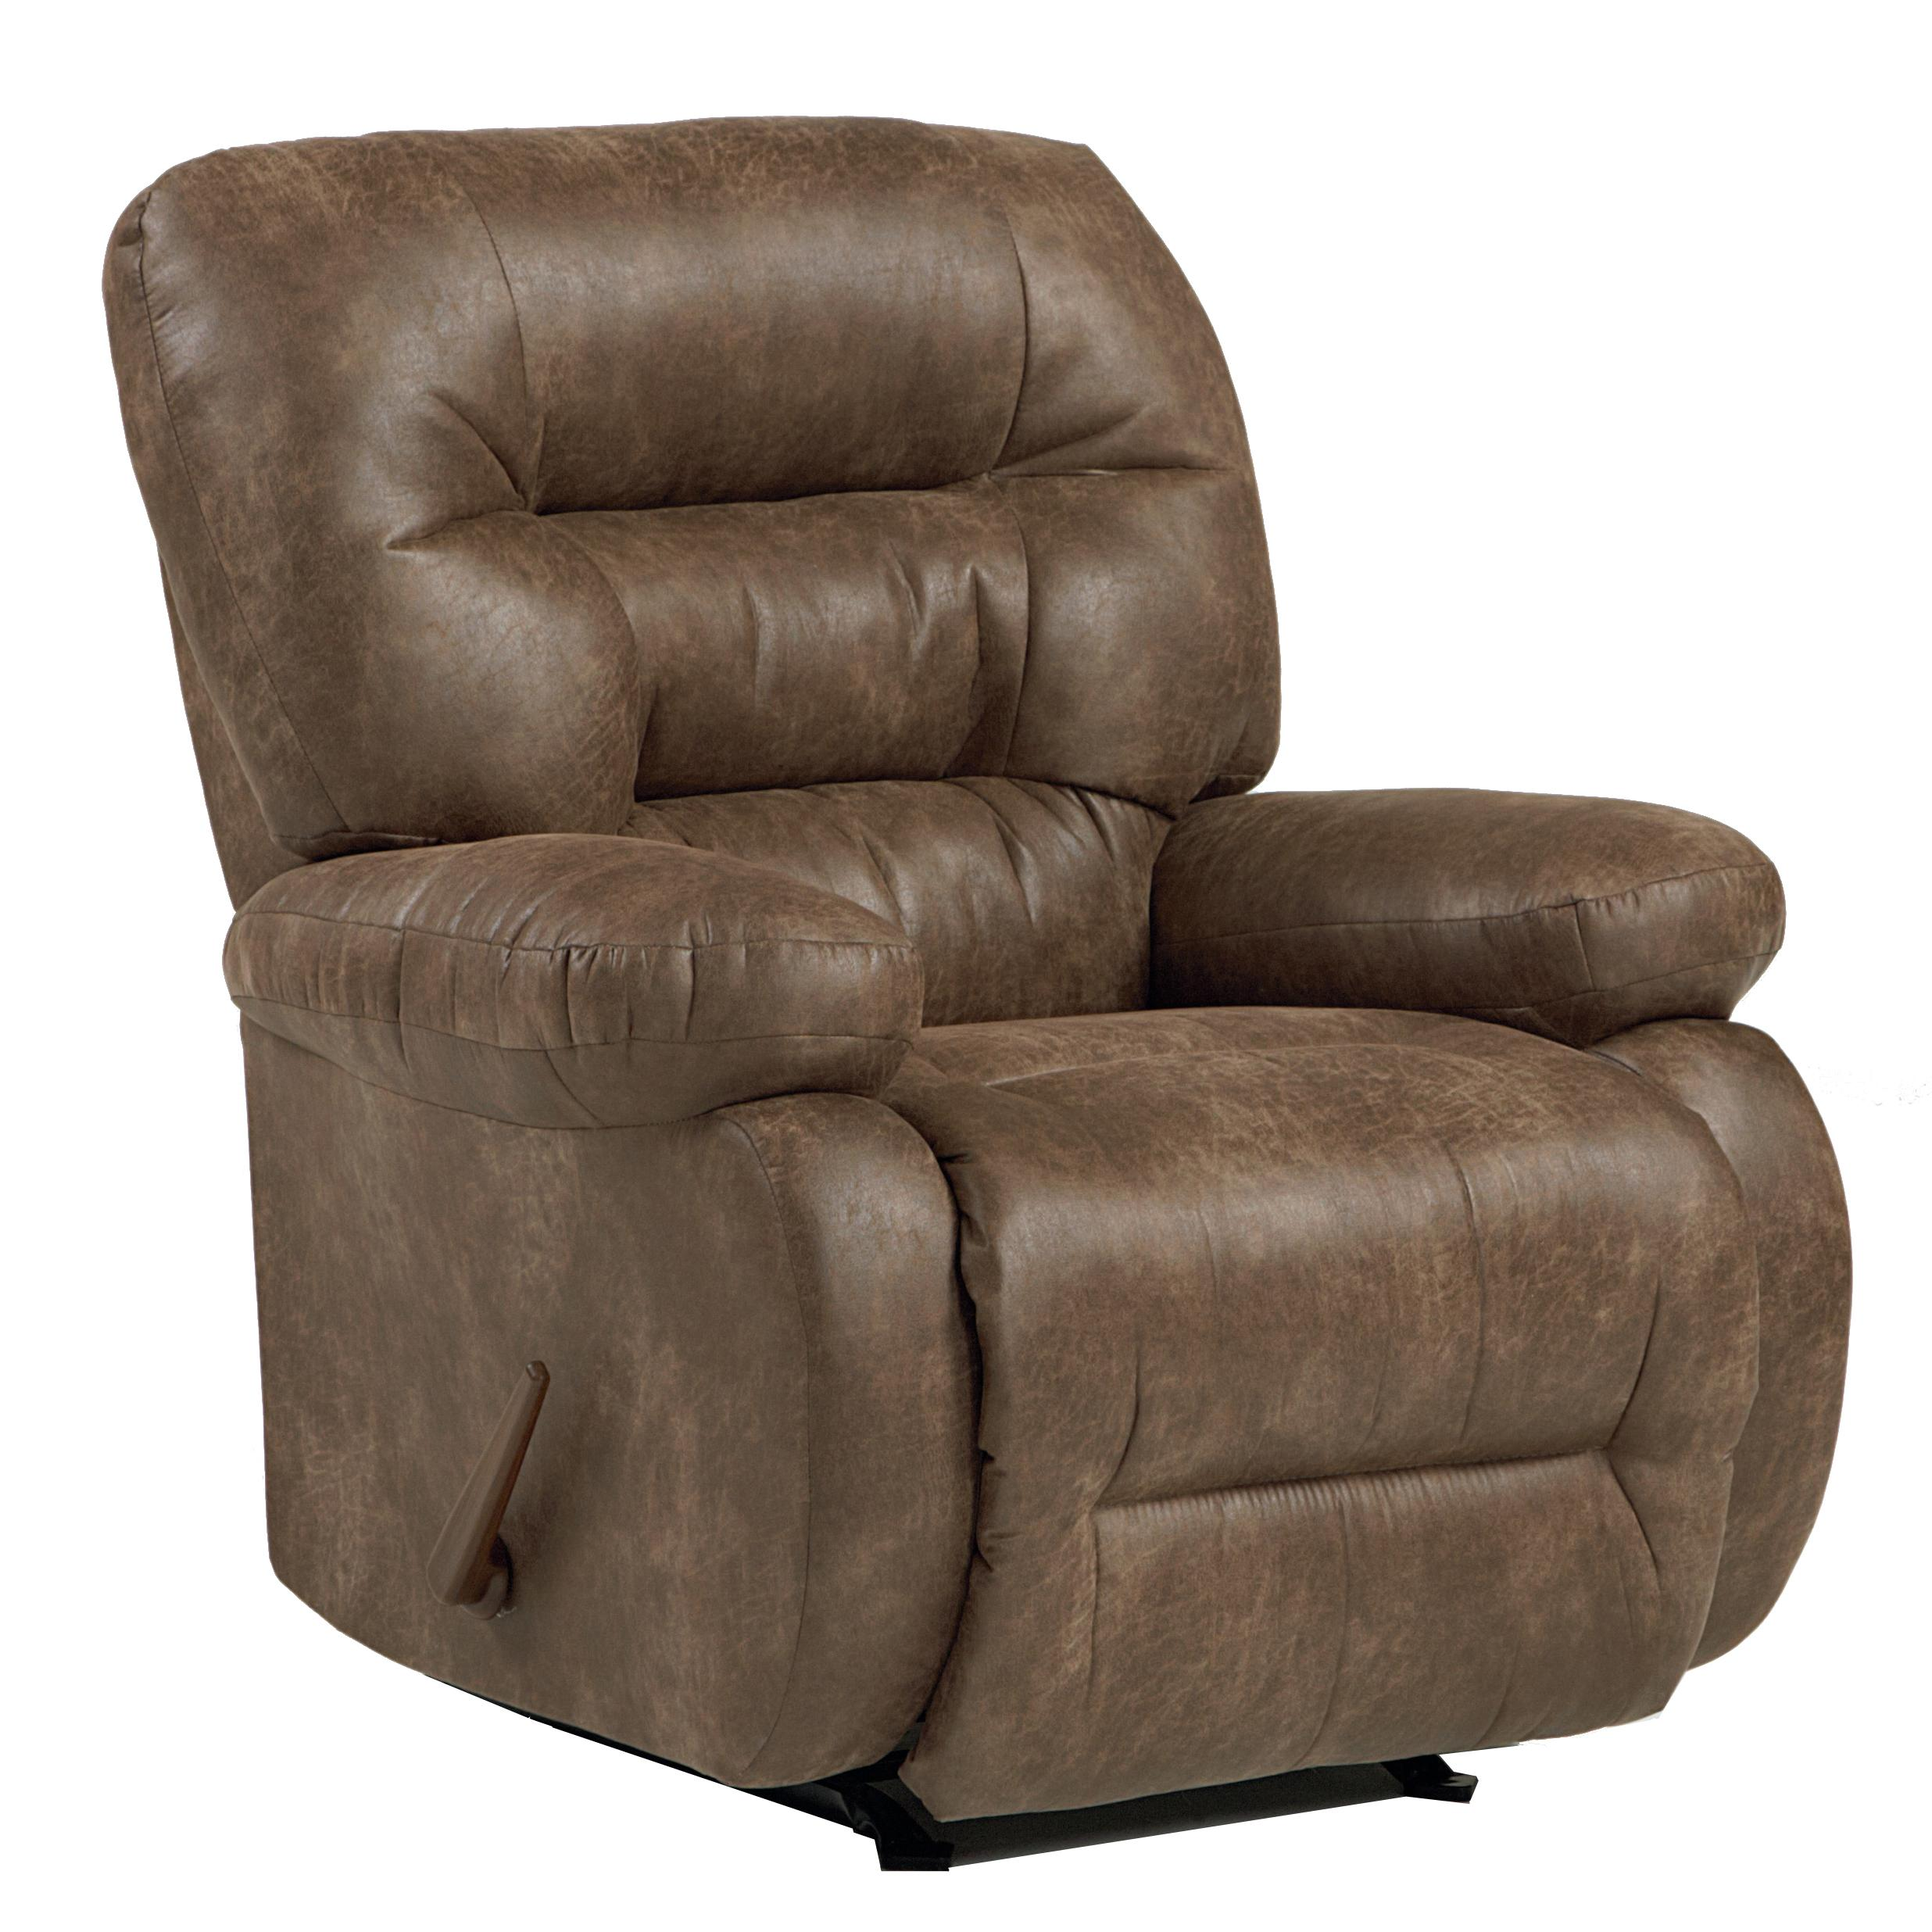 Best Home Furnishings Recliners - Medium Maddox Power Space Saver Recliner - Item Number: 8NP44